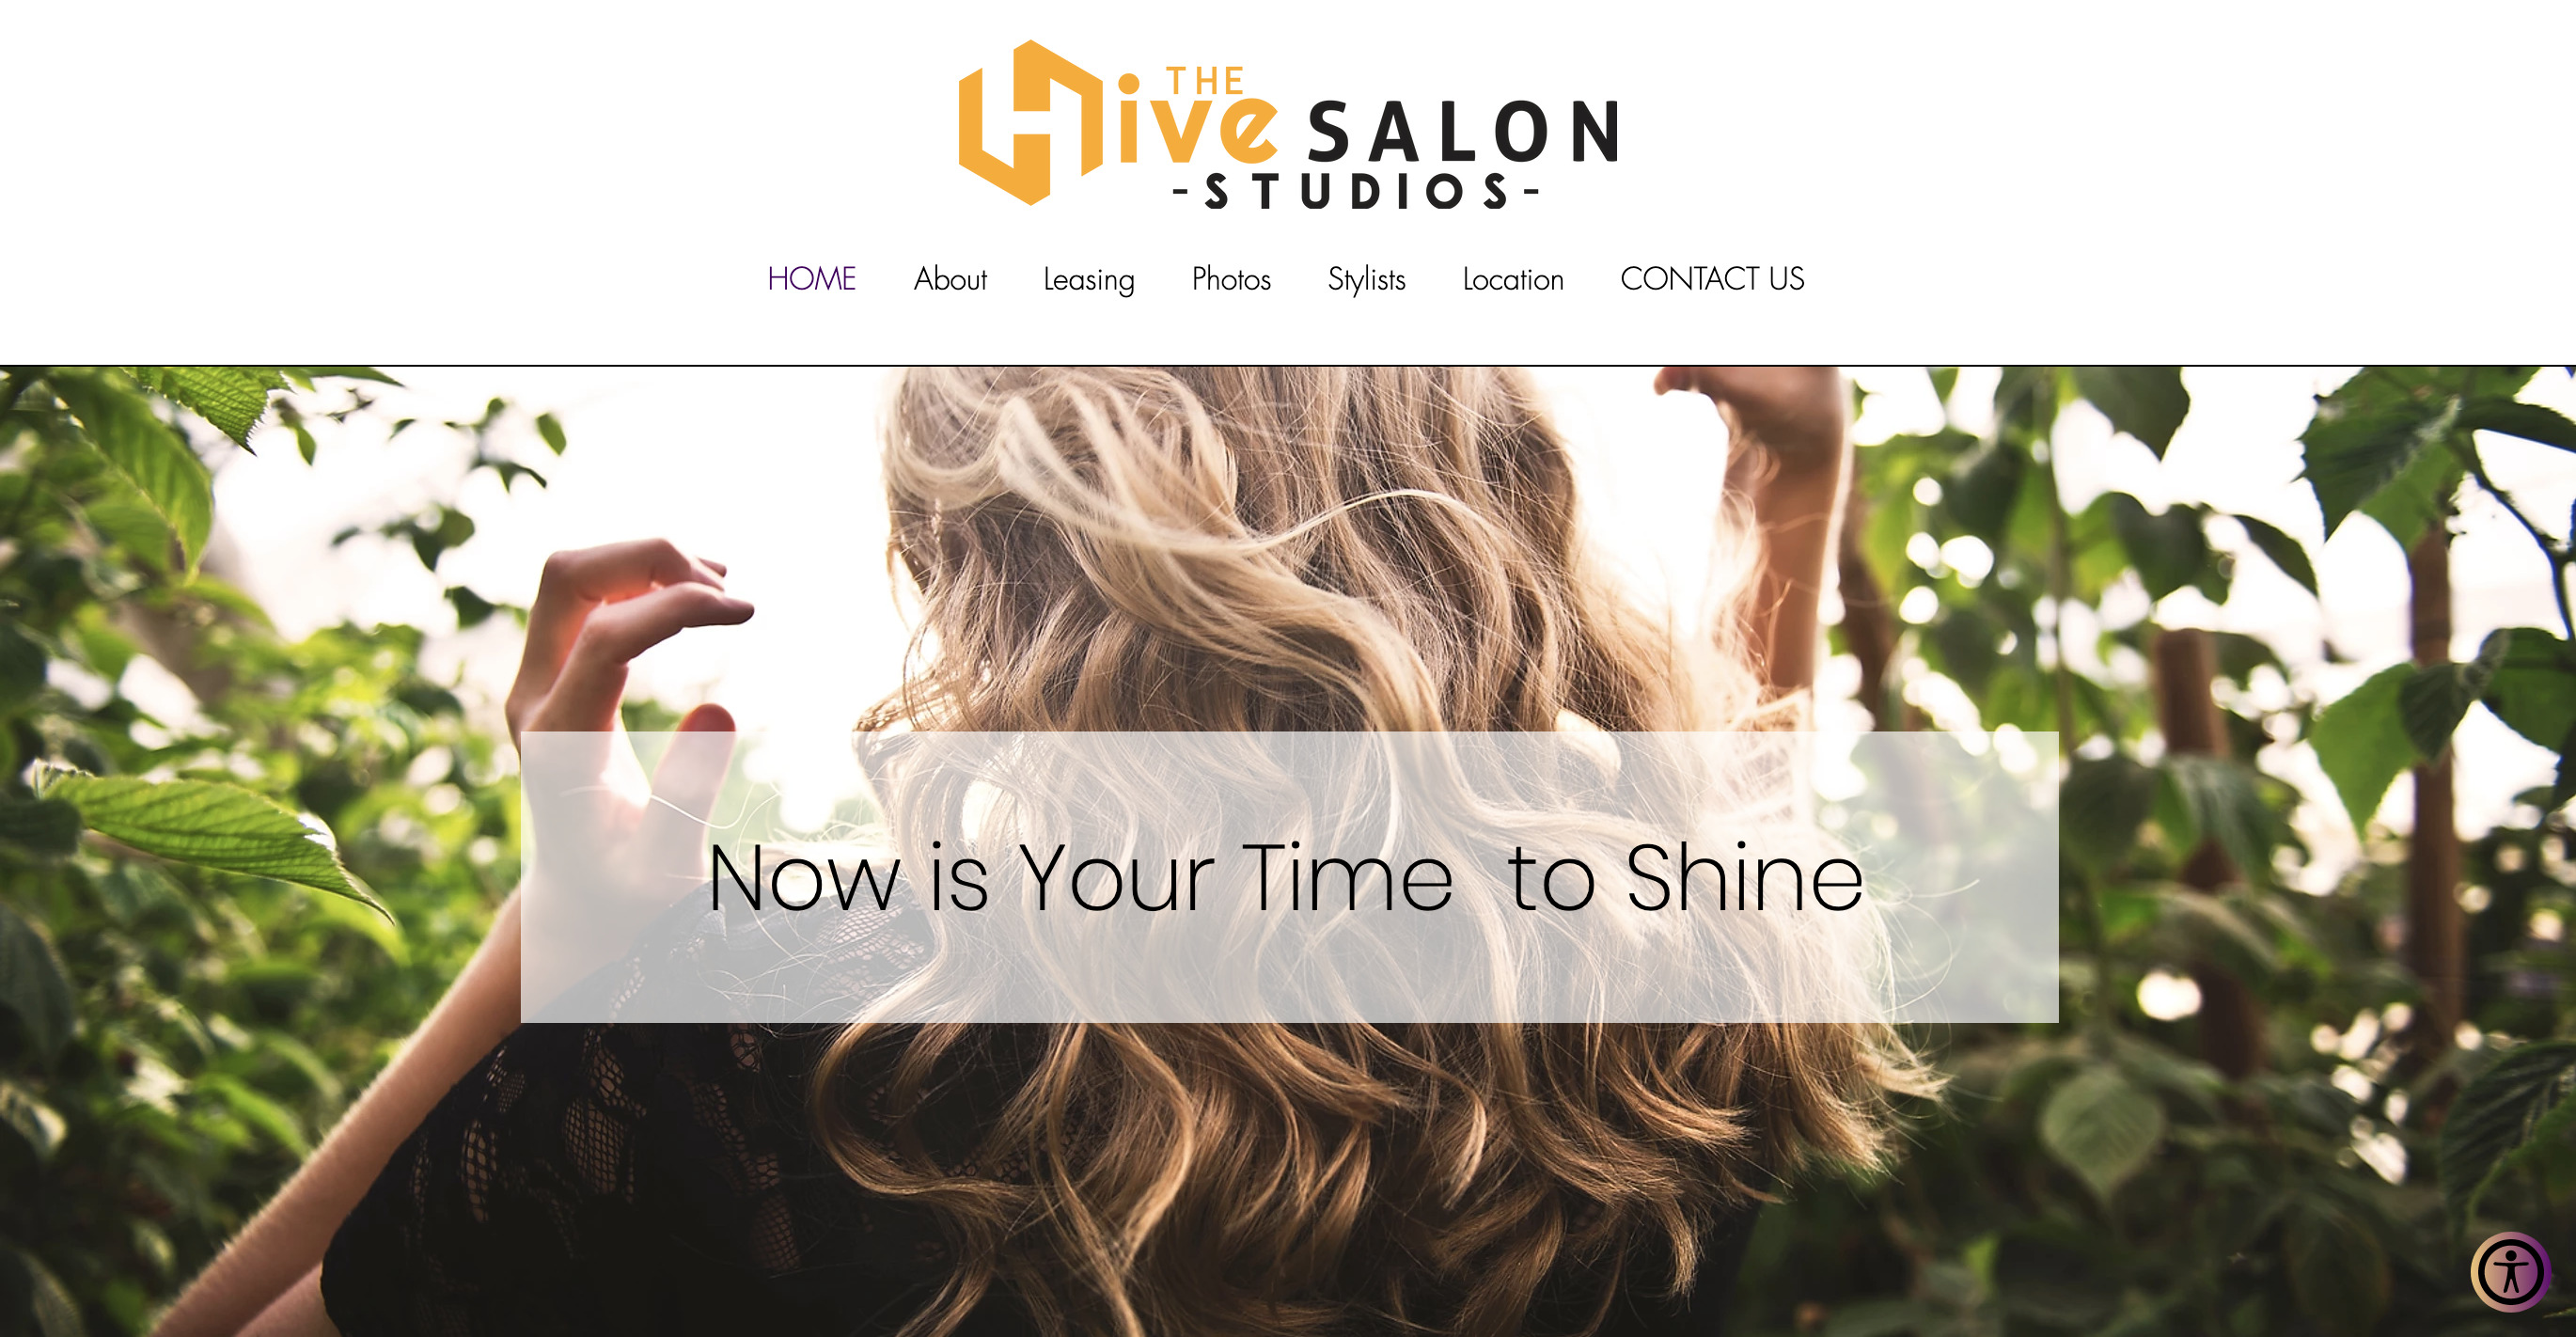 The Hive Salon Studios